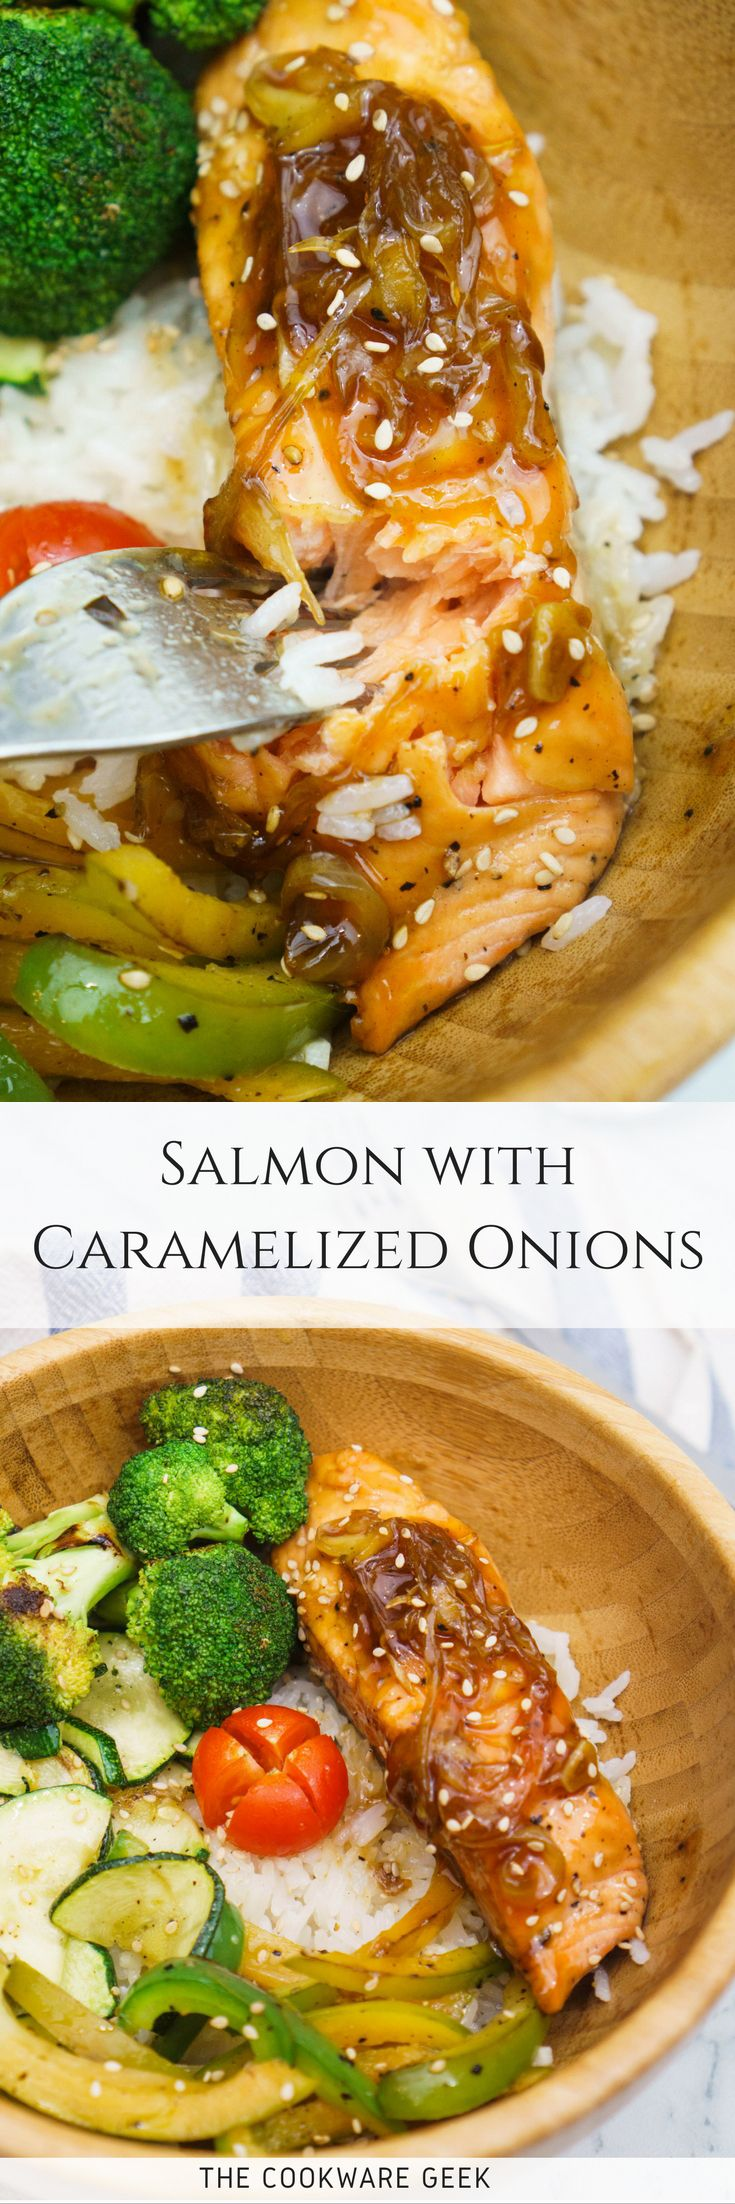 Salmon with Oyster Sauce and Caramelized Onions | The Cookware Geek